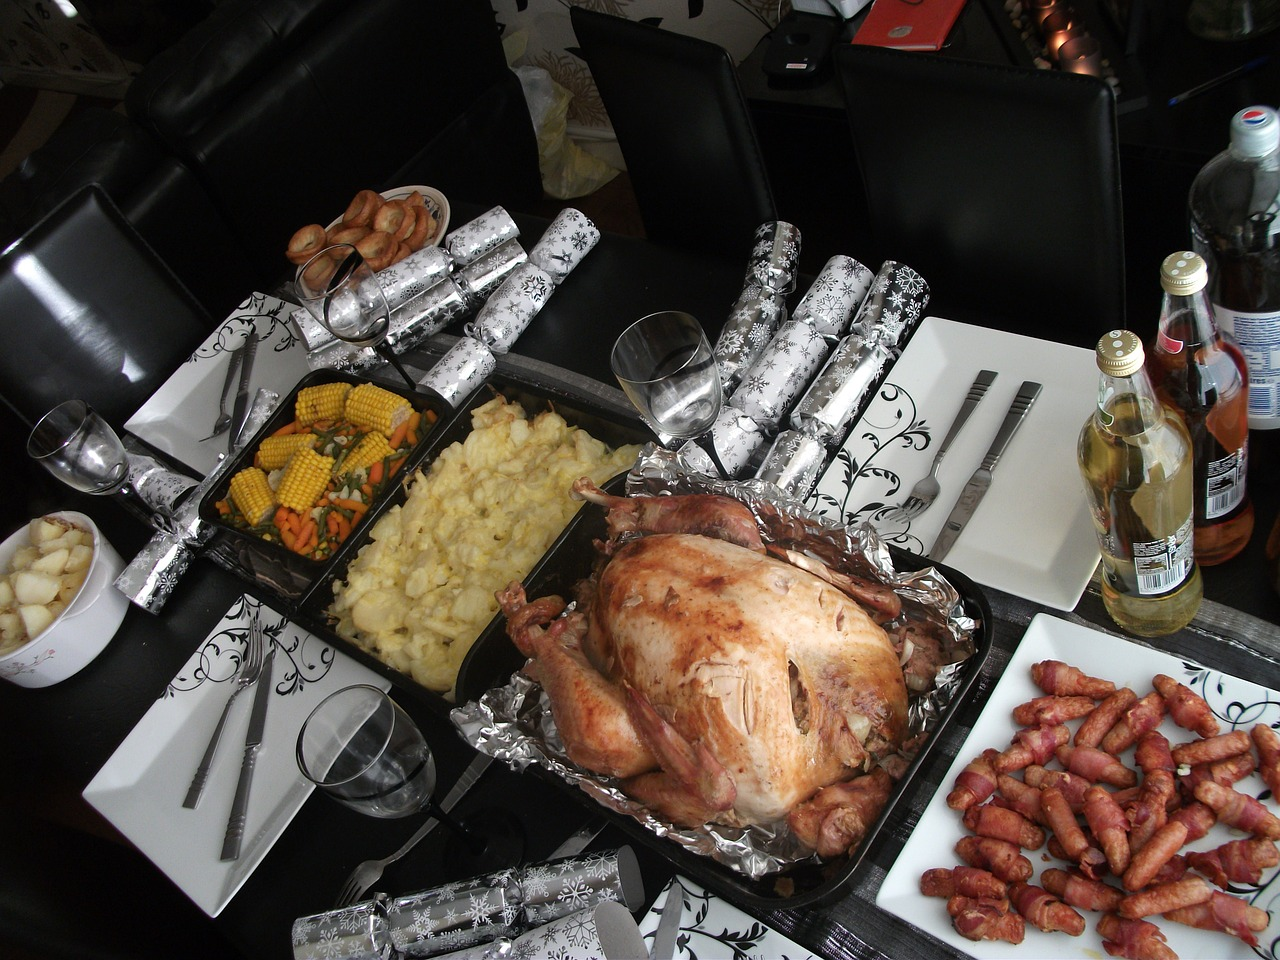 How to Prepare a Holiday Meal for Guests With Dietary Restrictions